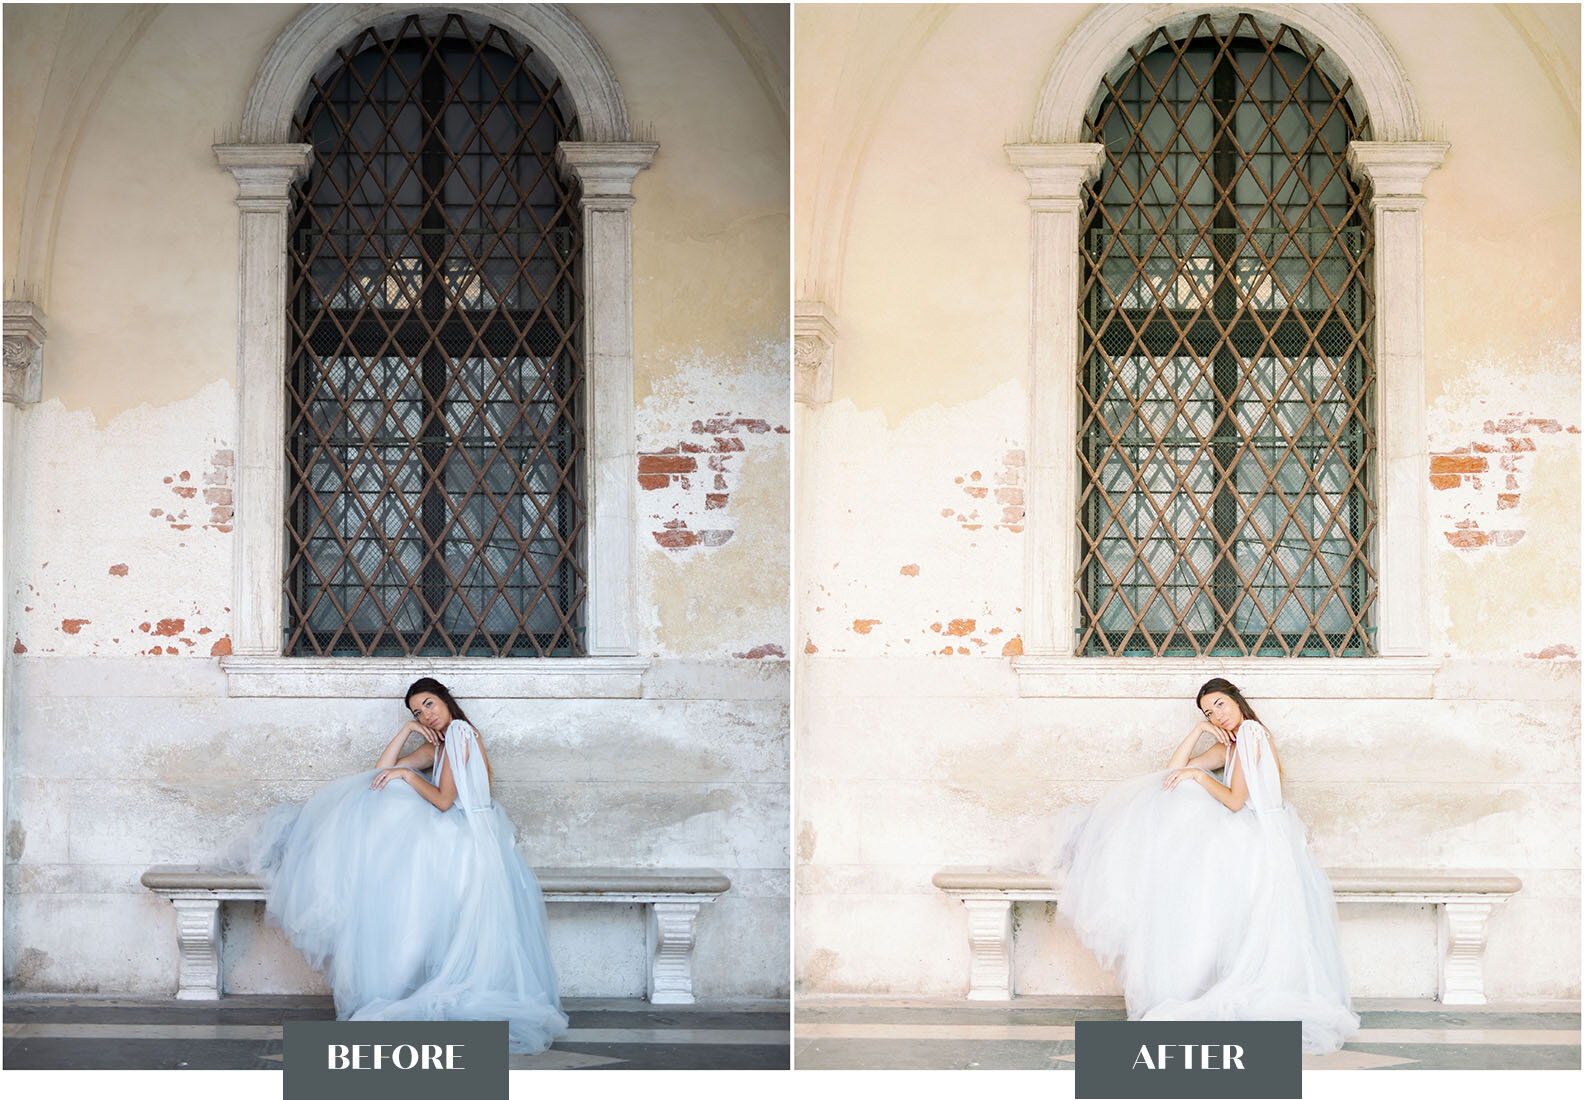 goodlight presets before after color pack 1 - 8.jpg